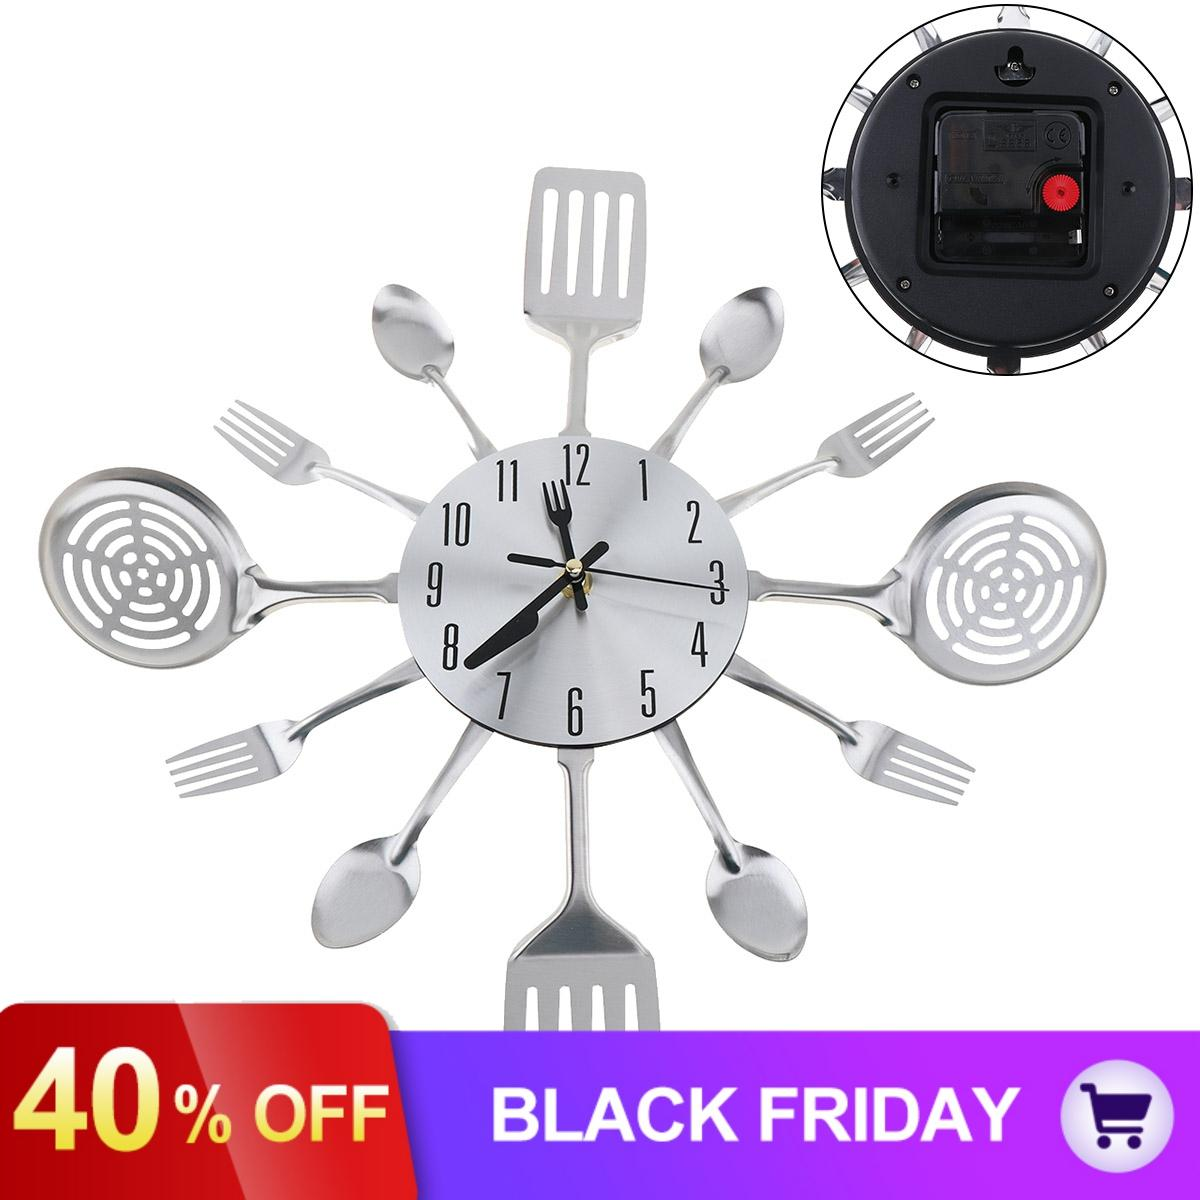 Silver Fashion Simple 3D DIY Wall Clock Cutlery Horloge With Knive And Forks For Home Kitchen Living Room